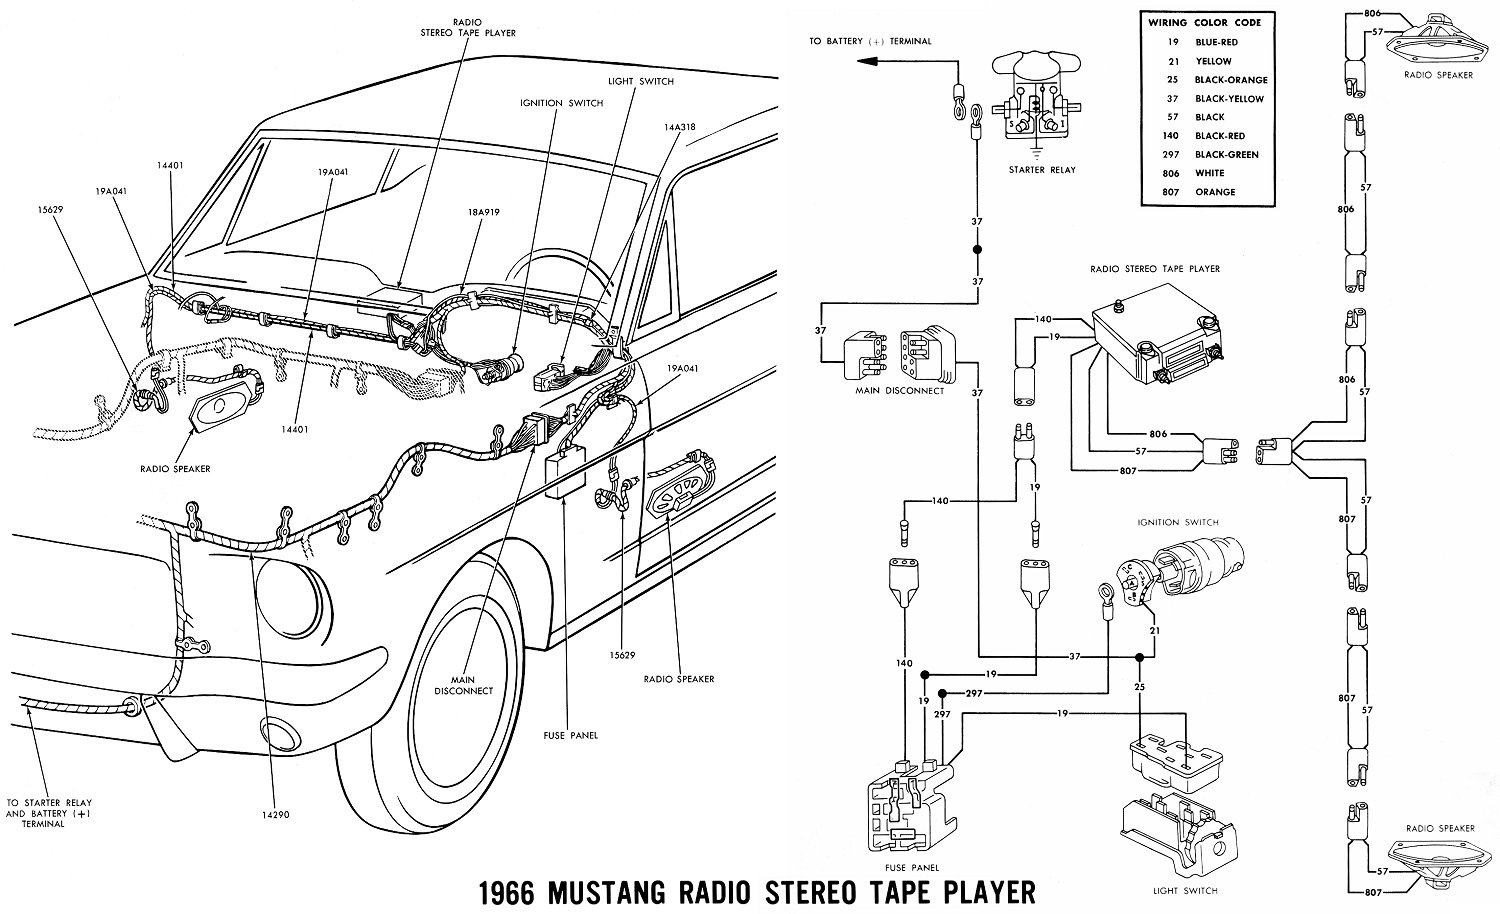 69 Mustang Radio Wiring Diagram Land 91 Fuse Box Wire Color Vintage Diagrams 67 66 Accessories Schematic Stereo Tape Player